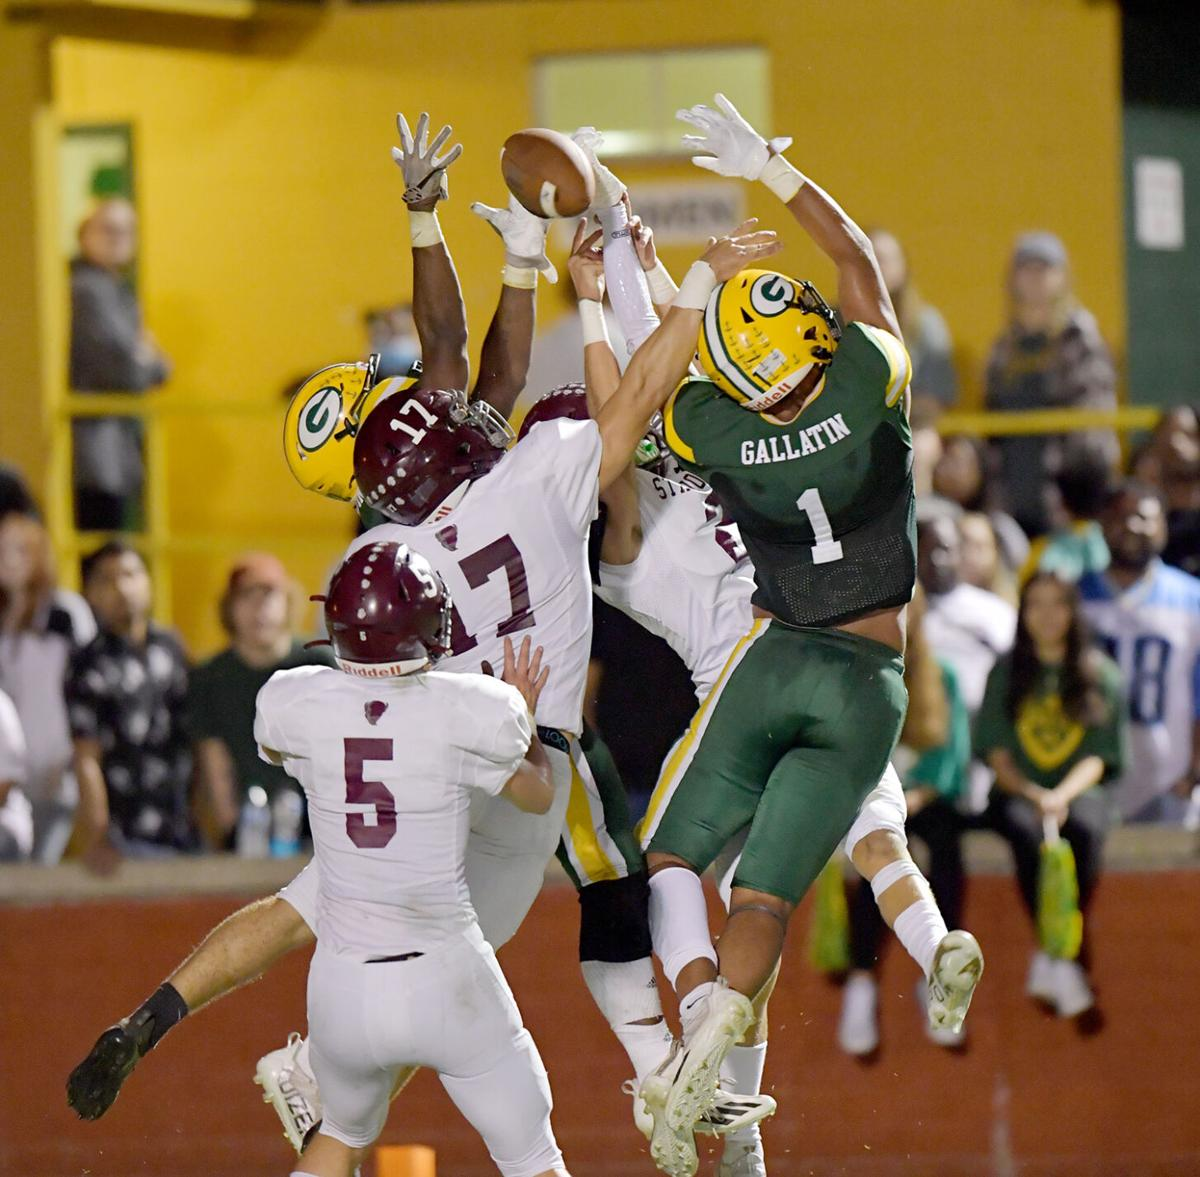 A Green Wave pass falls incomplete as DJ Rogers (1), Christian Pentecost (17) and others compete for the football. .jpg